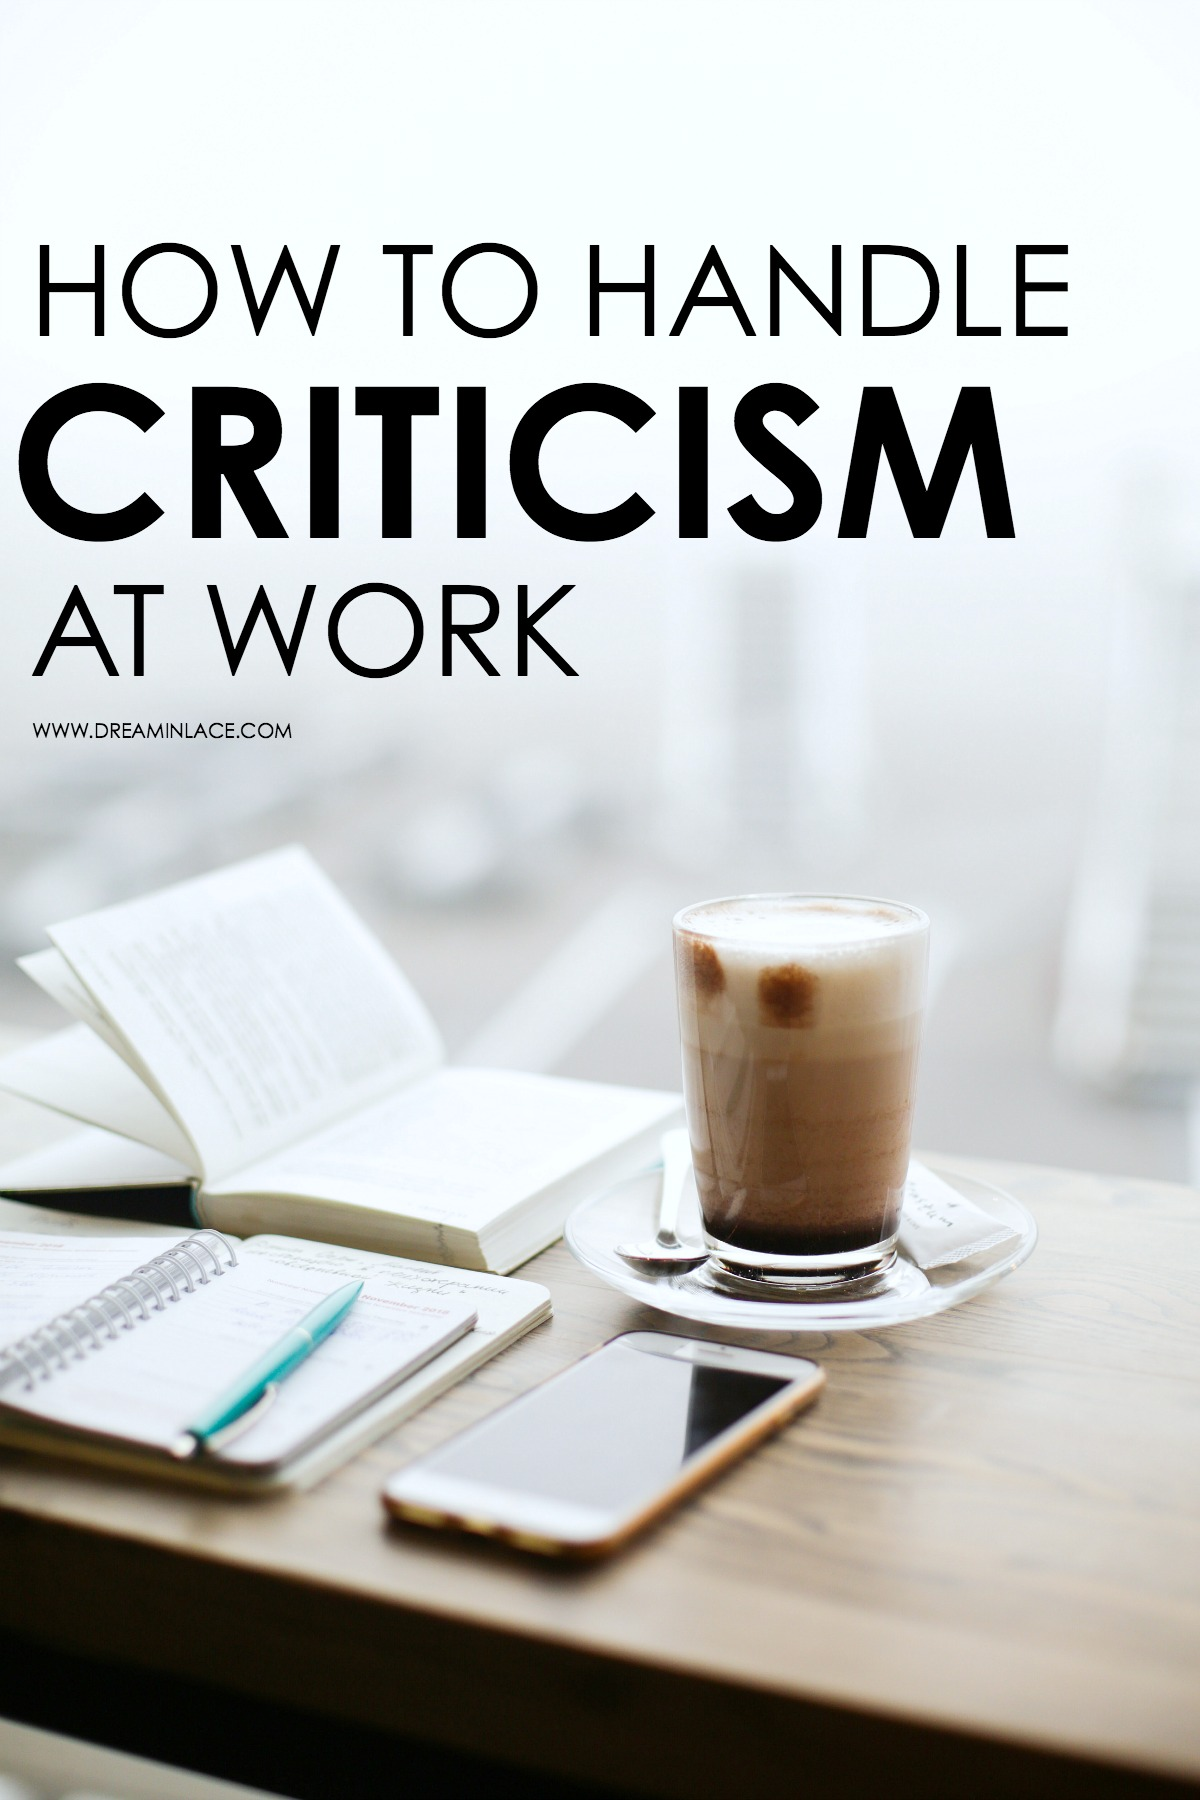 How to Handle Criticism at Work I DreaminLace.com #CareerTips #MotivationMonday #career